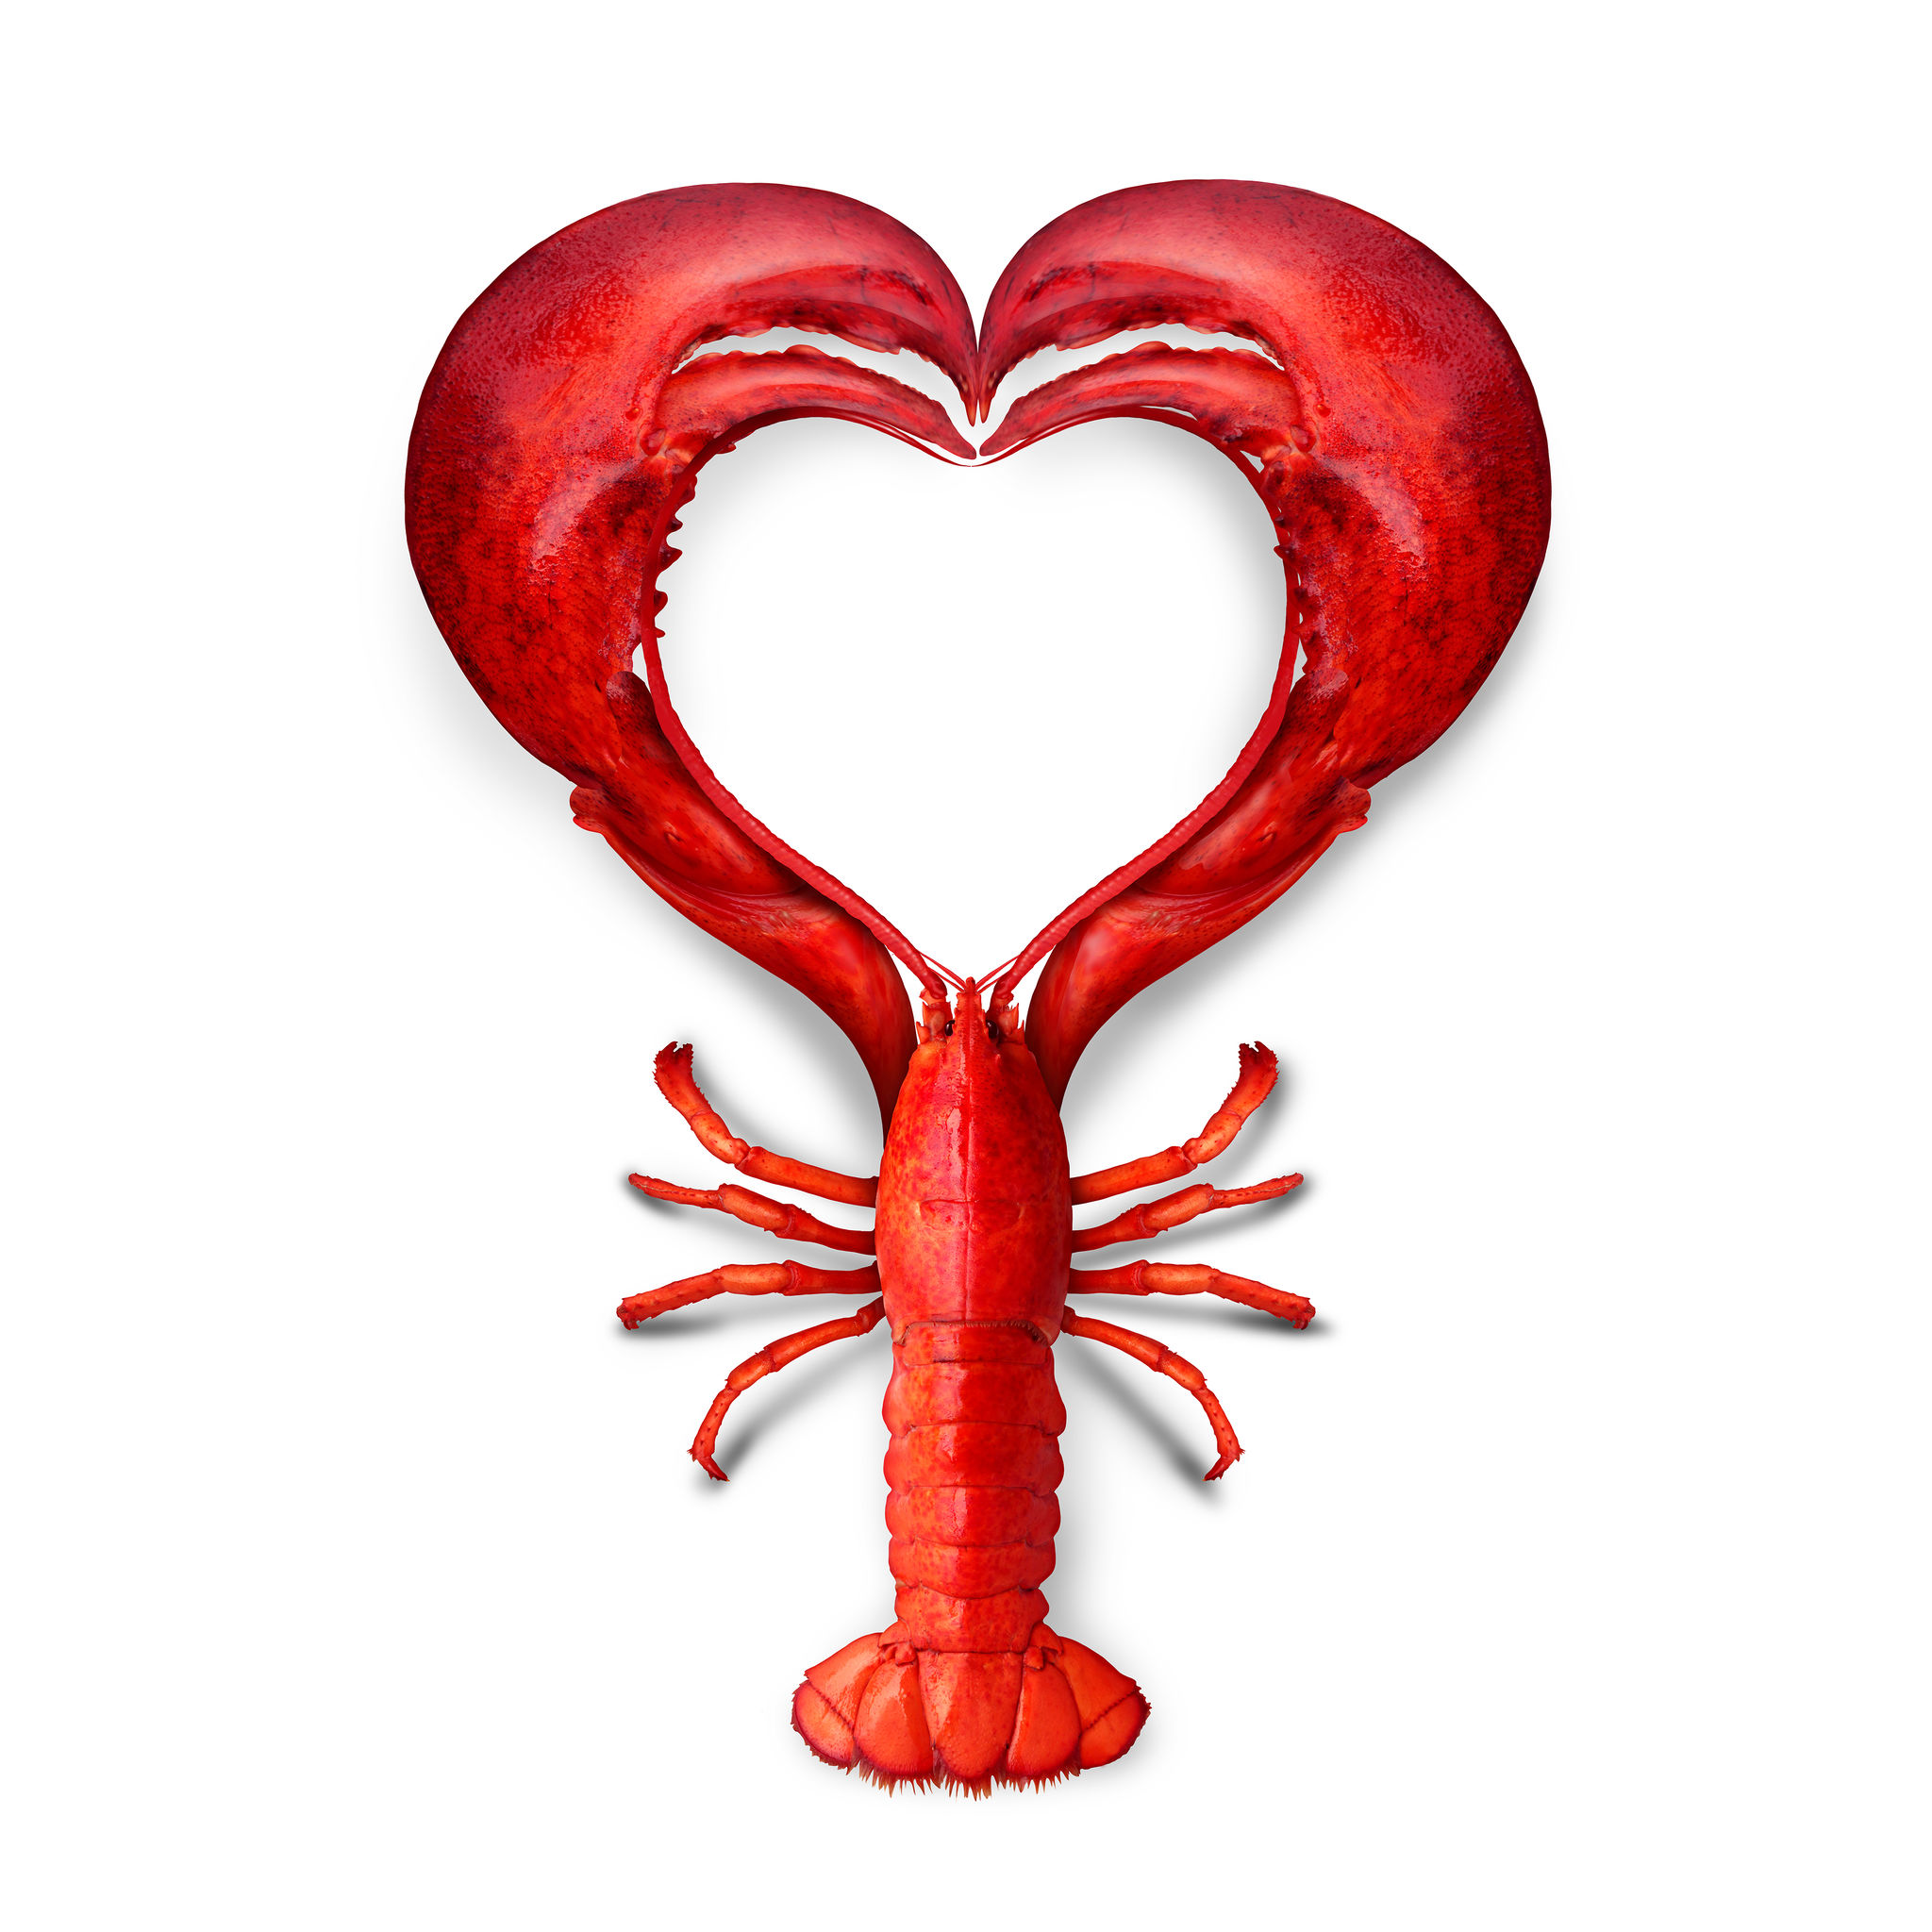 Why Lobsters Are an Aphrodisiac